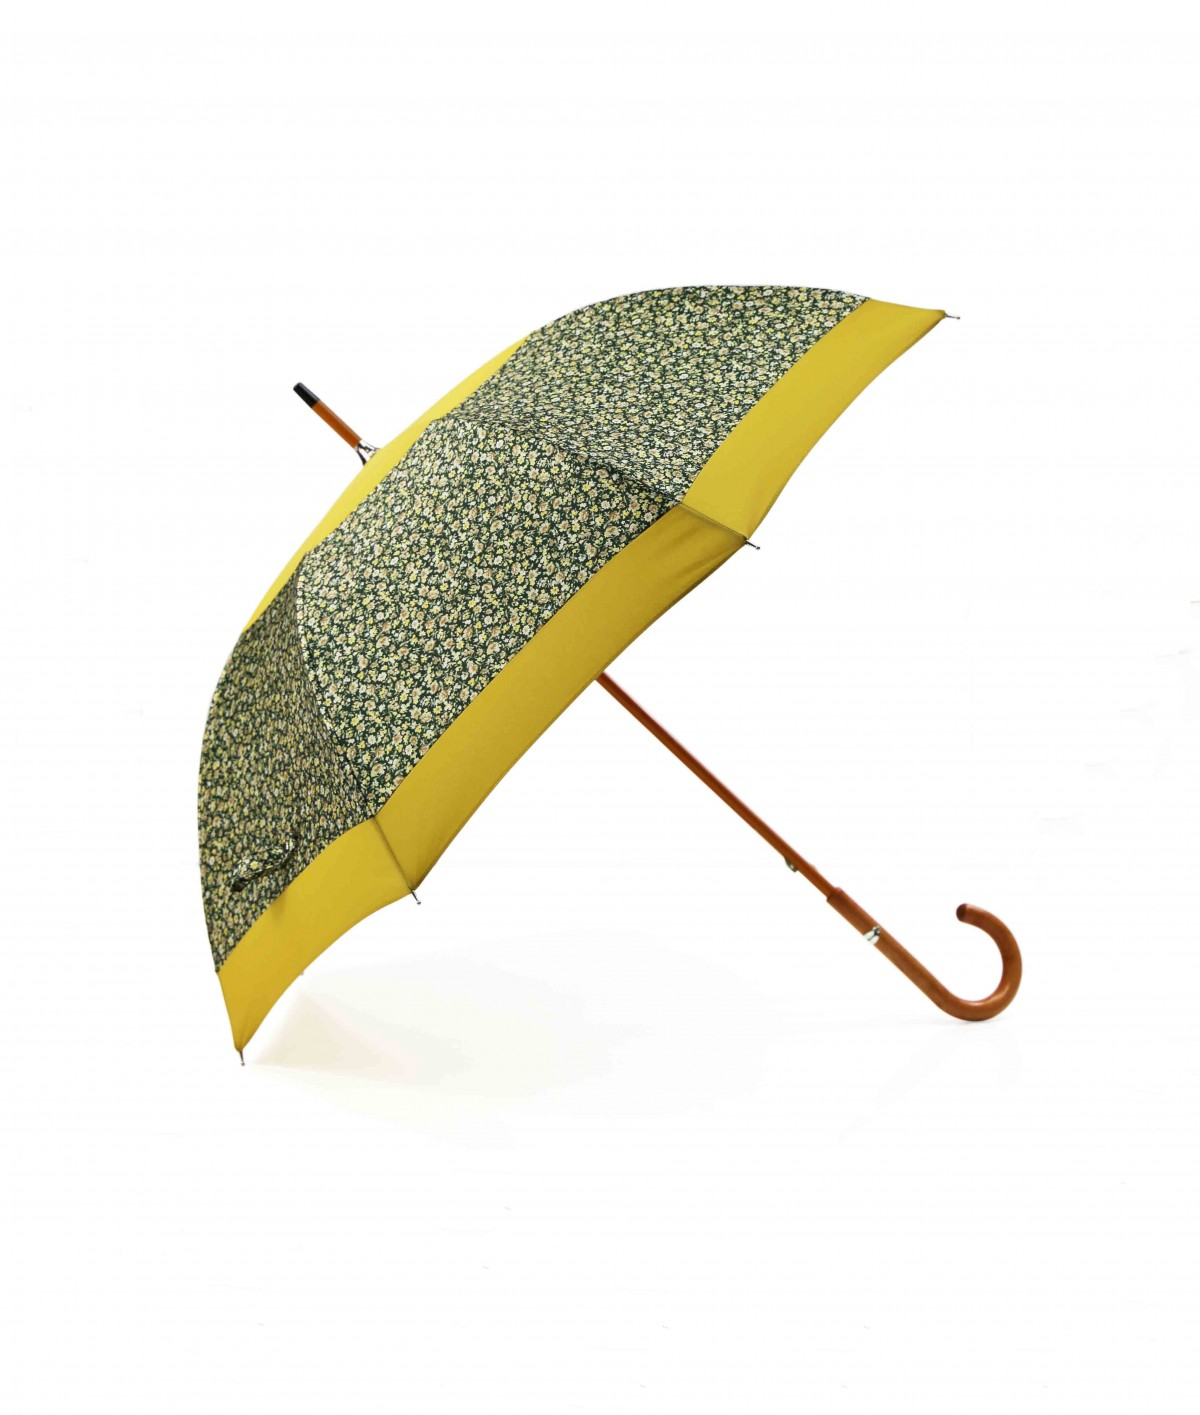 """→  """"Fancy Assembly"""" Umbrella - Long Manual N°4 - Made in France by Maison Pierre Vaux French Umbrella Manufacturer"""